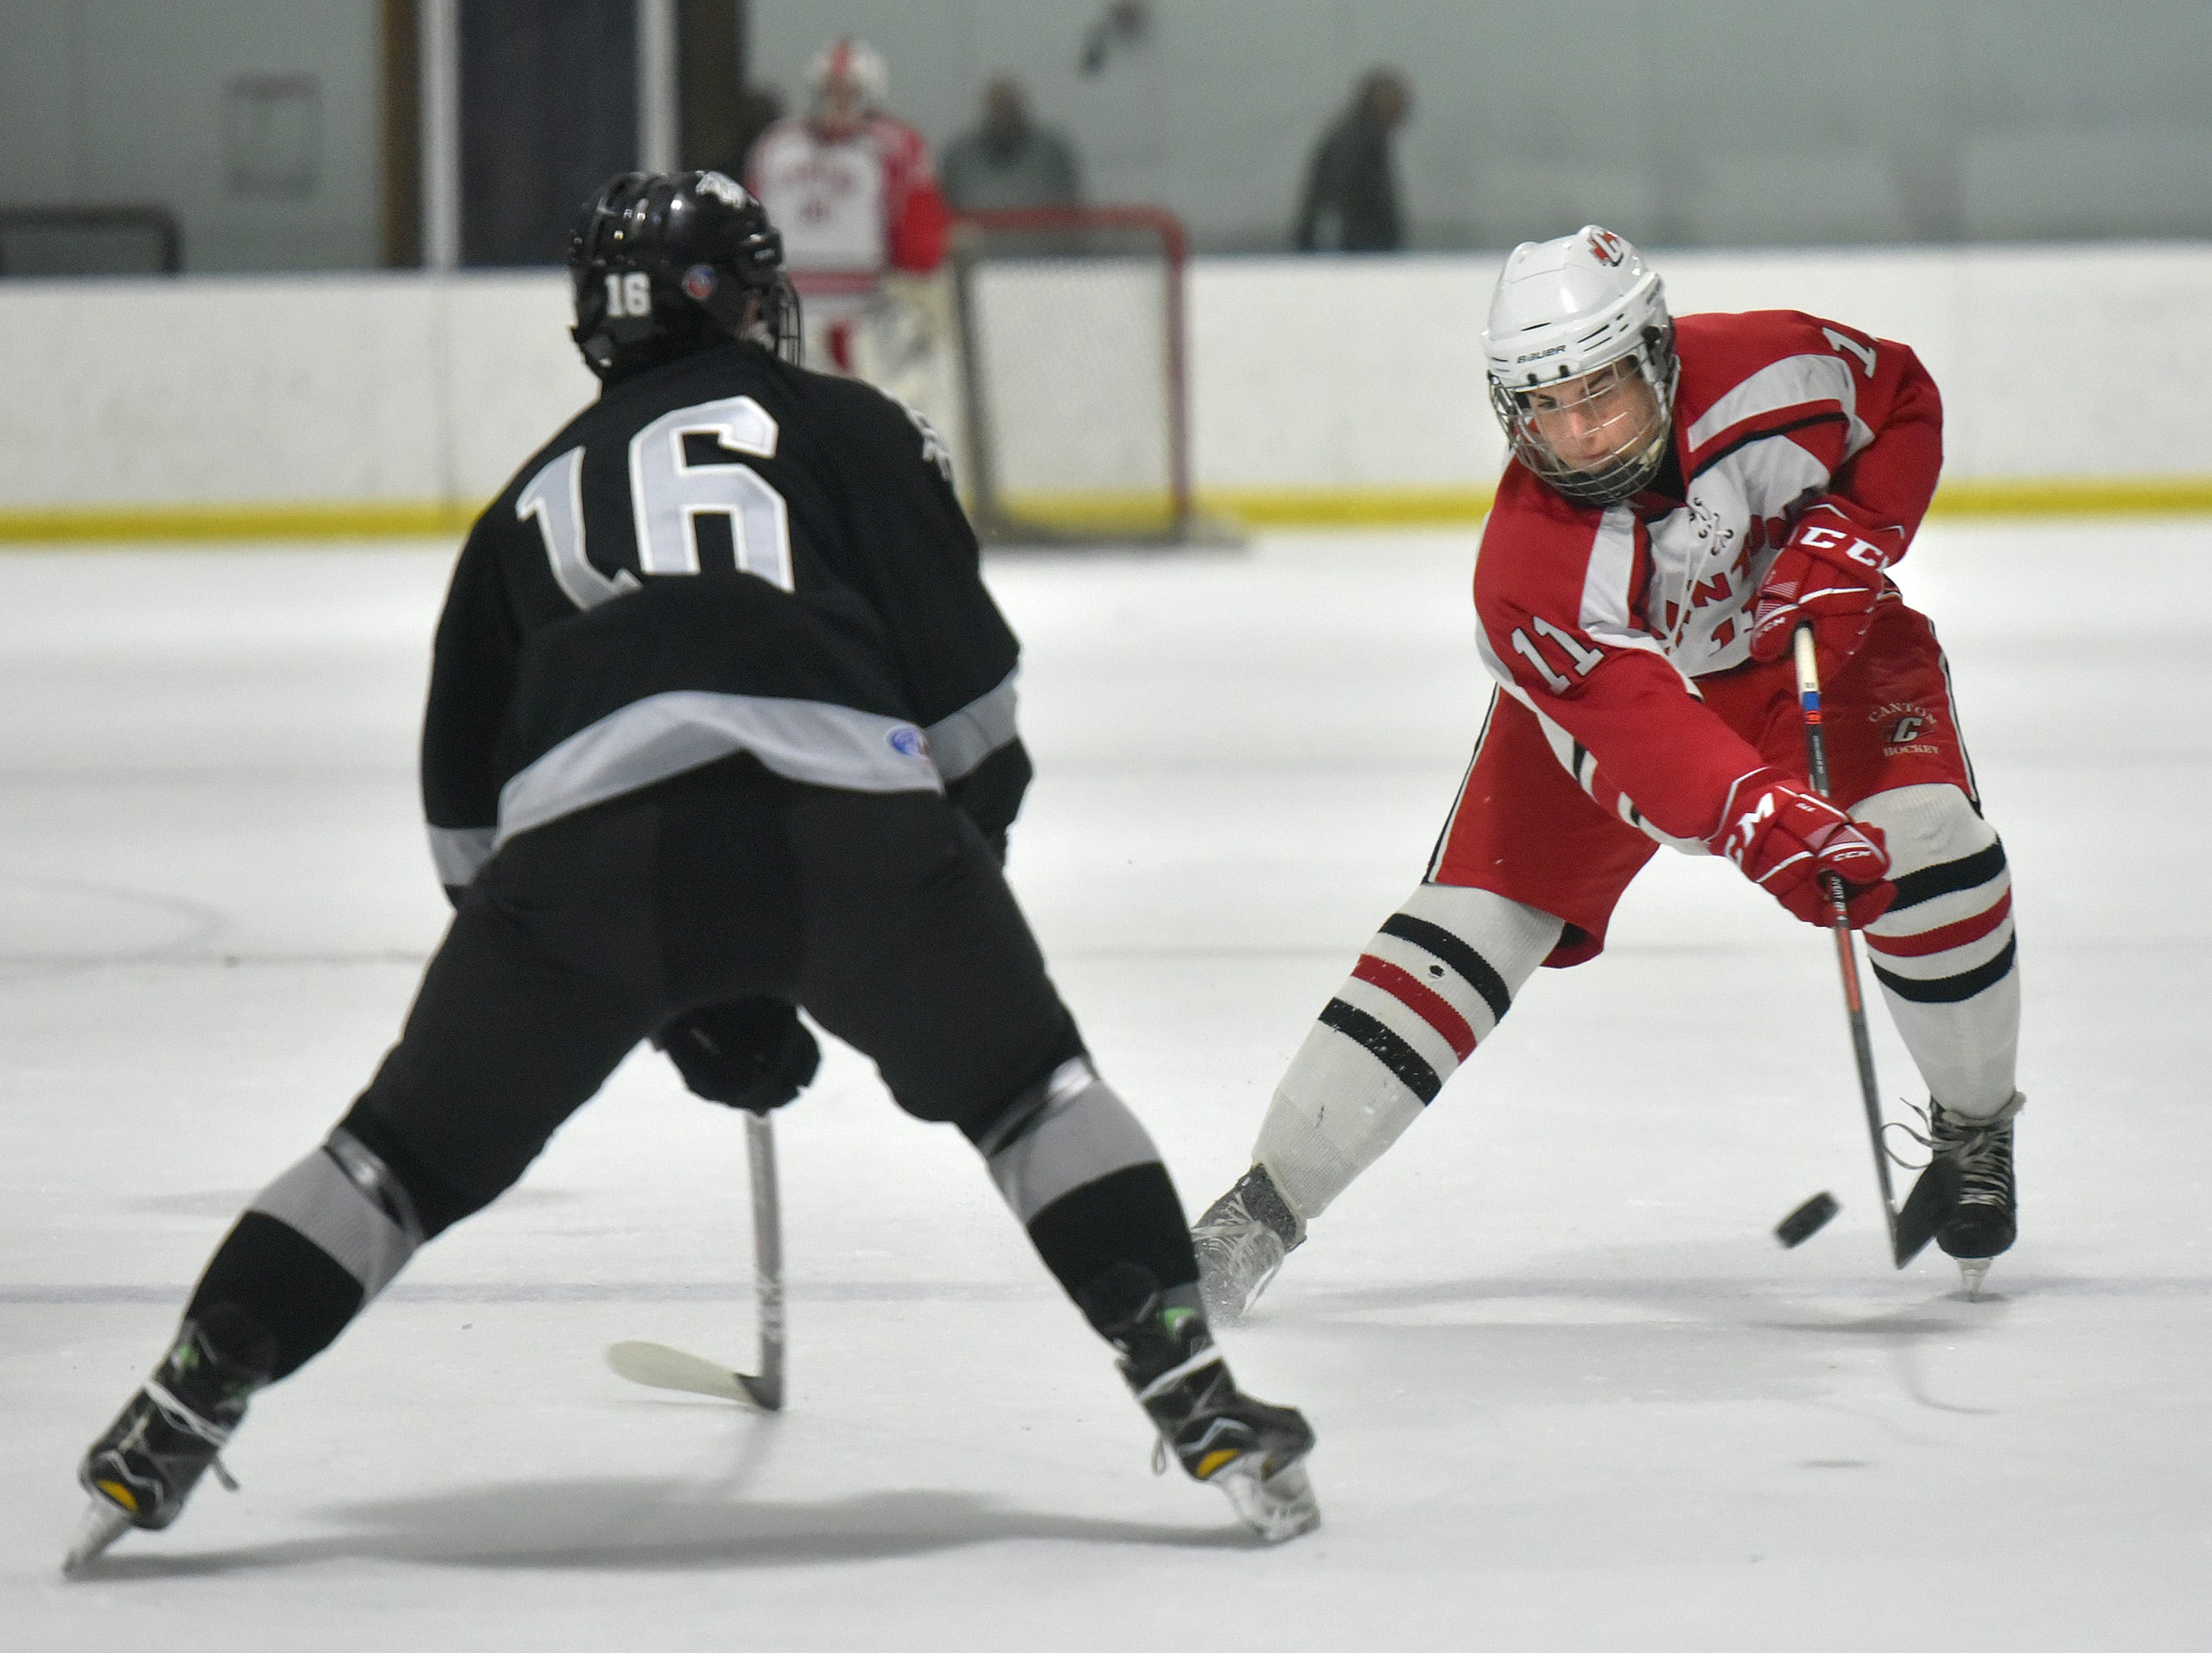 Chief Lenny Kubitski (11) tries to work the puck past Wildcat defender Kyle Ahern (16).